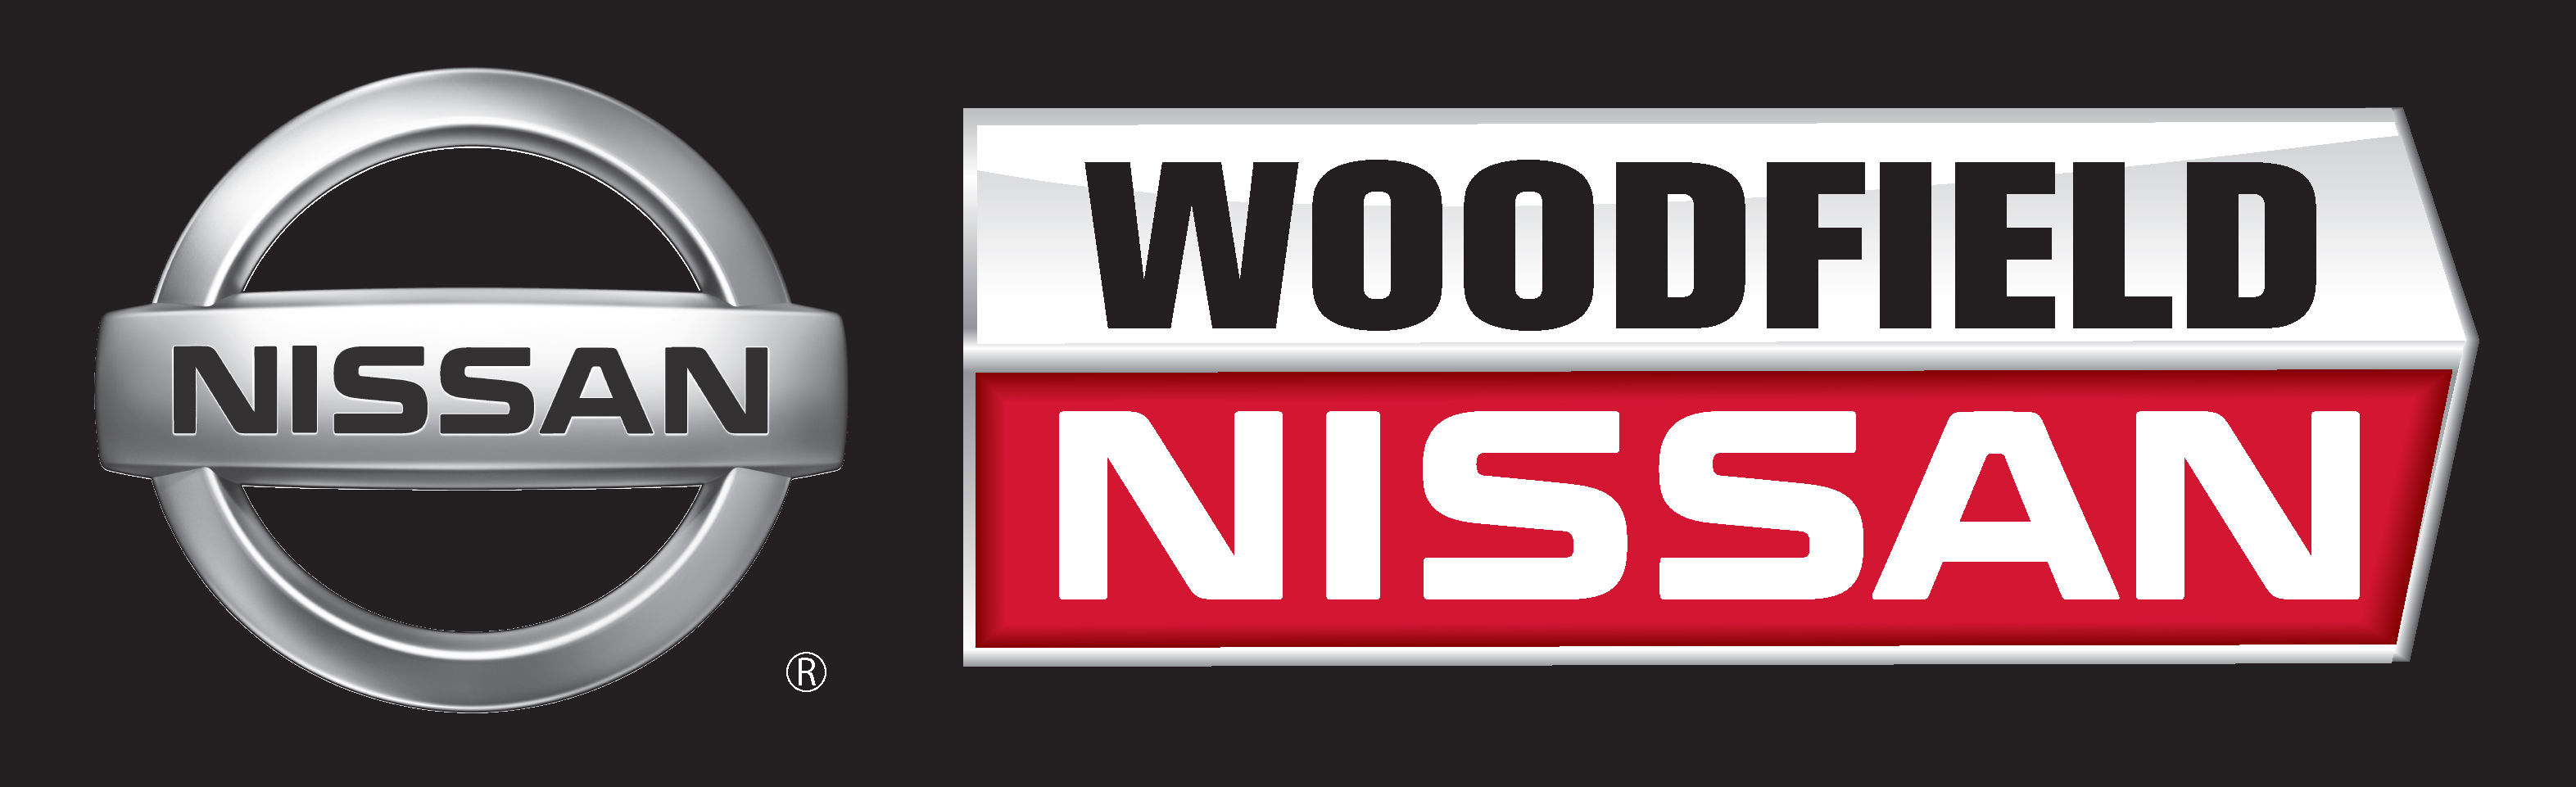 Nissan Dealership Chicago >> Woodfield Nissan Hoffman Estates By Chicago Il L Nissan New